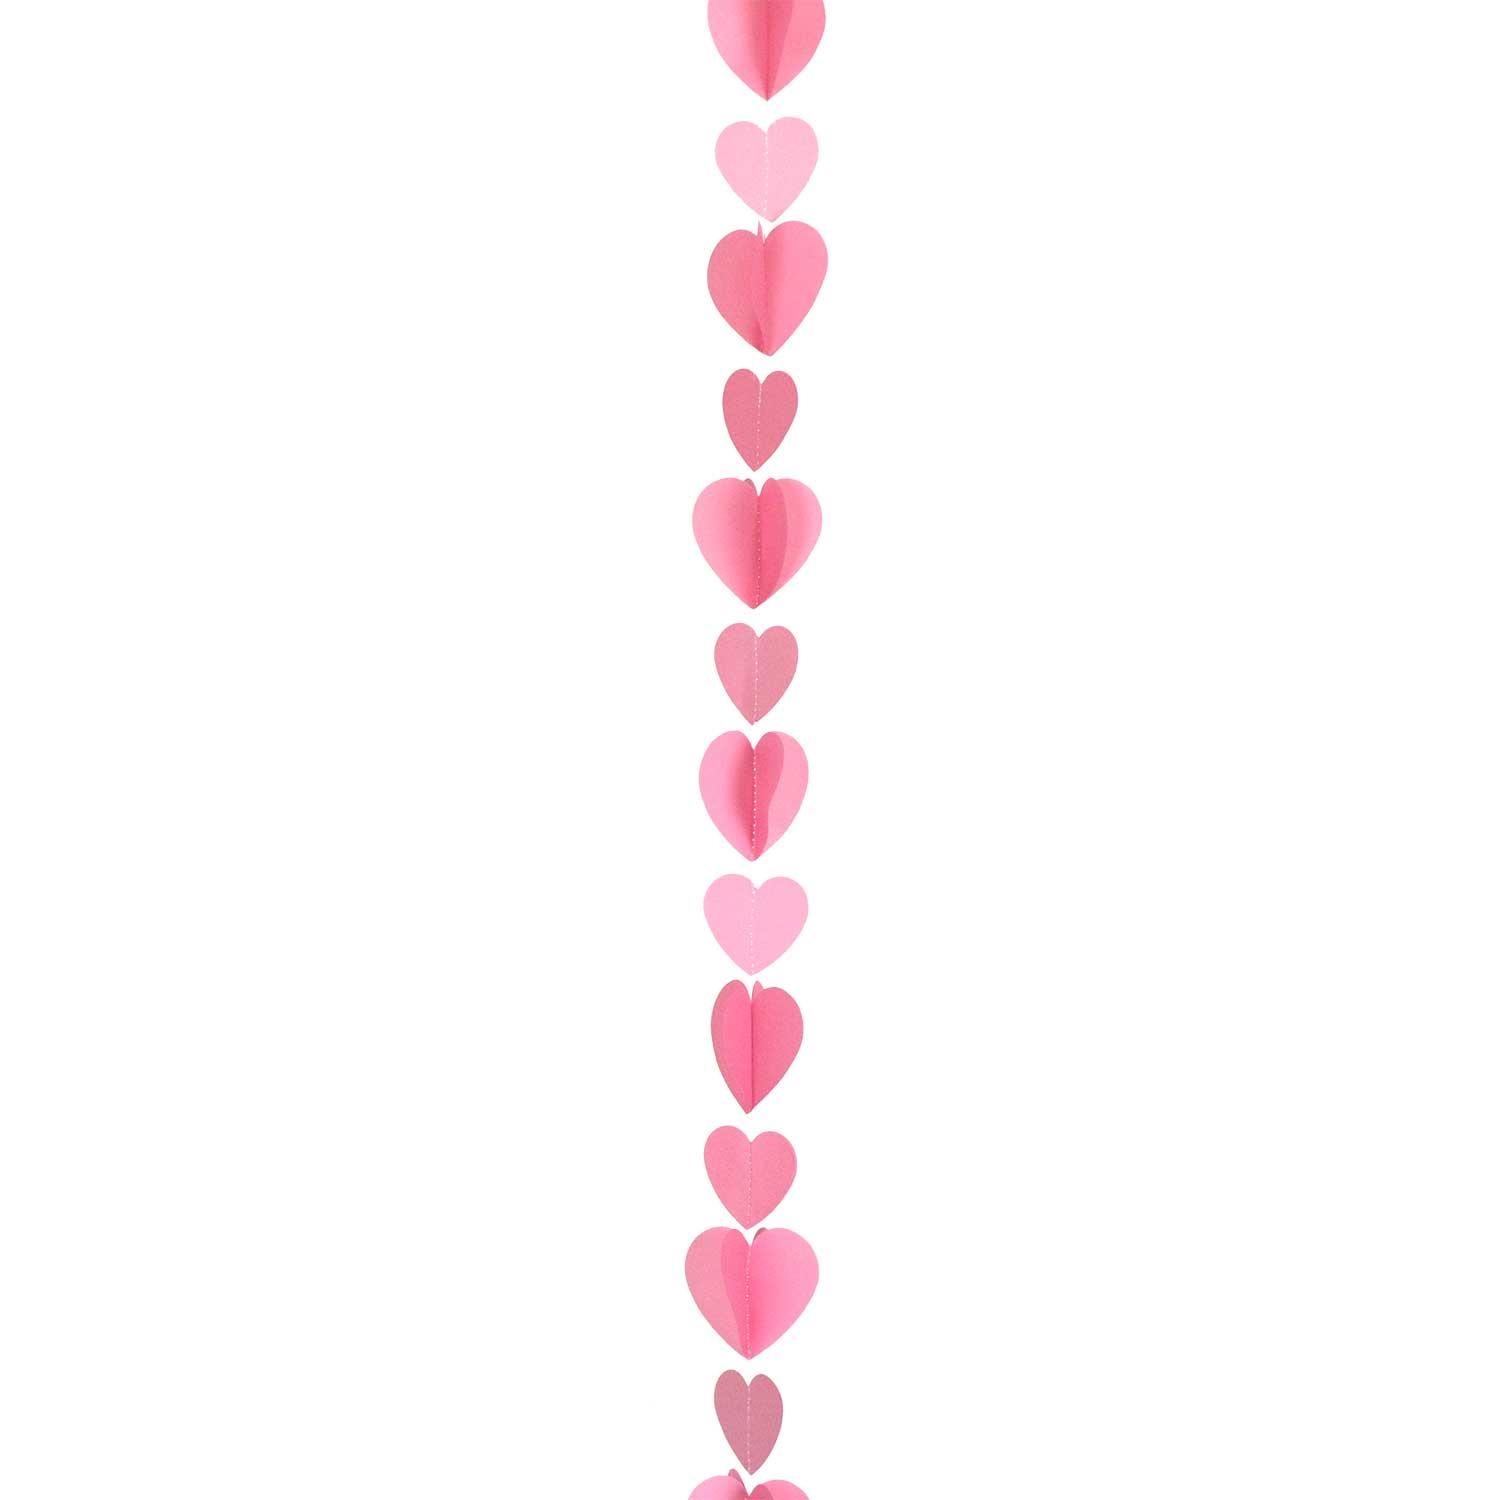 Balloon Tail String Hearts Pink